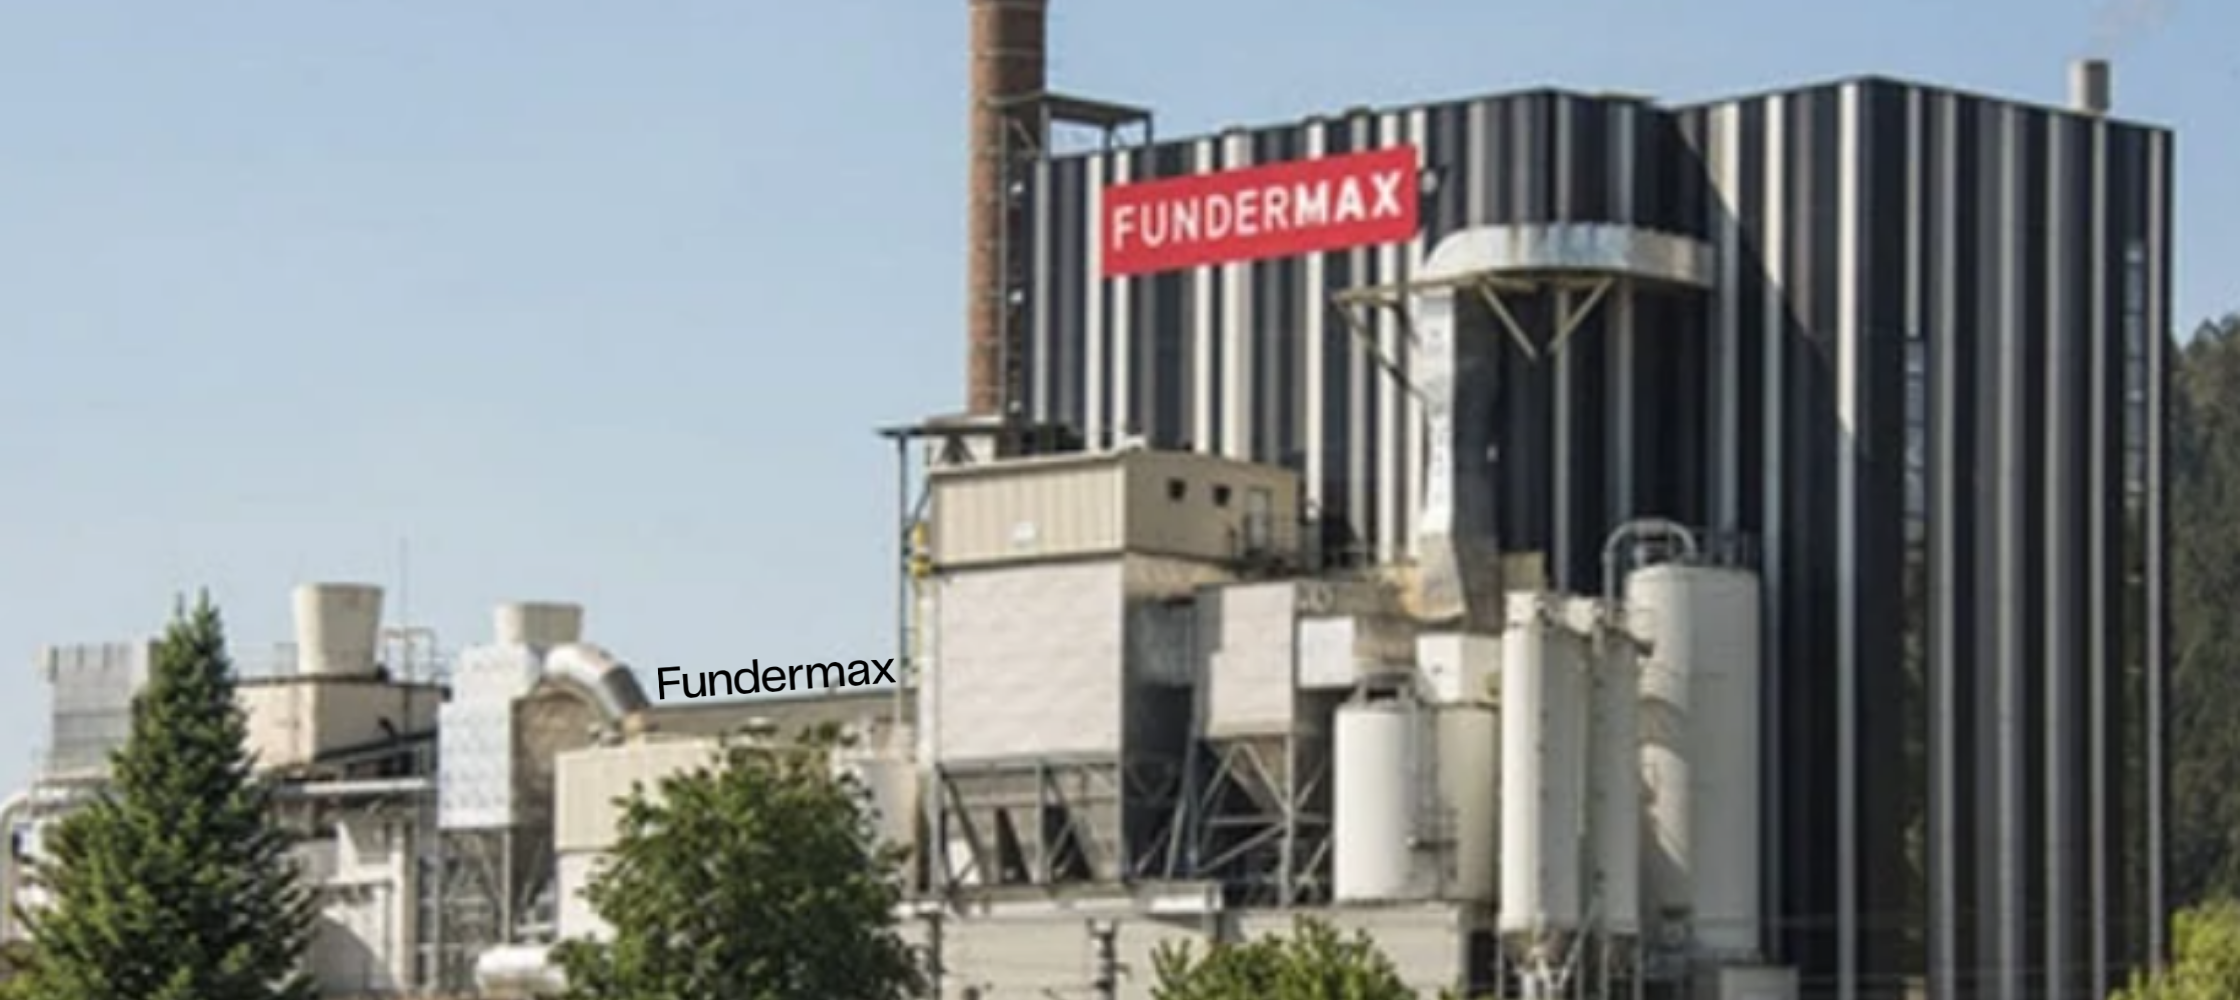 How Fundermax's Green Energy Manufacturing Prioritizes Our Planet